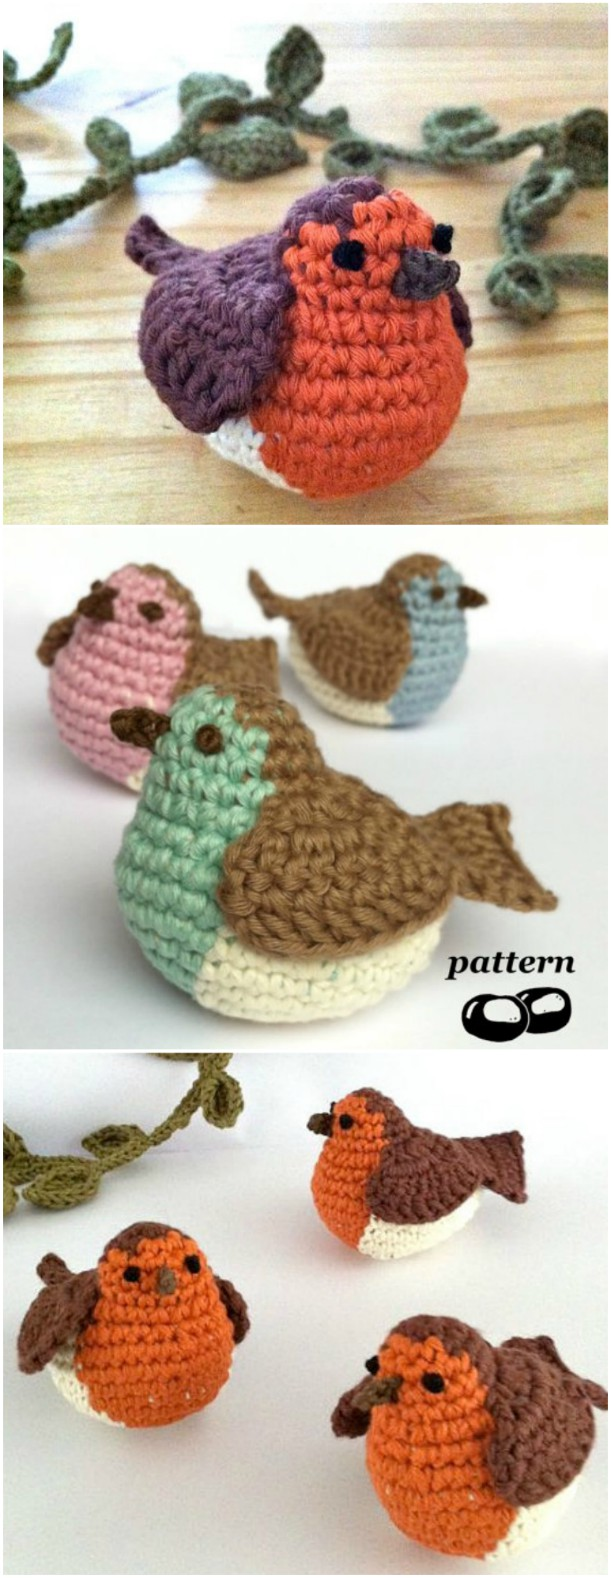 Valentine Love Birds Crochet Kit by Wool Couture | 1578x611